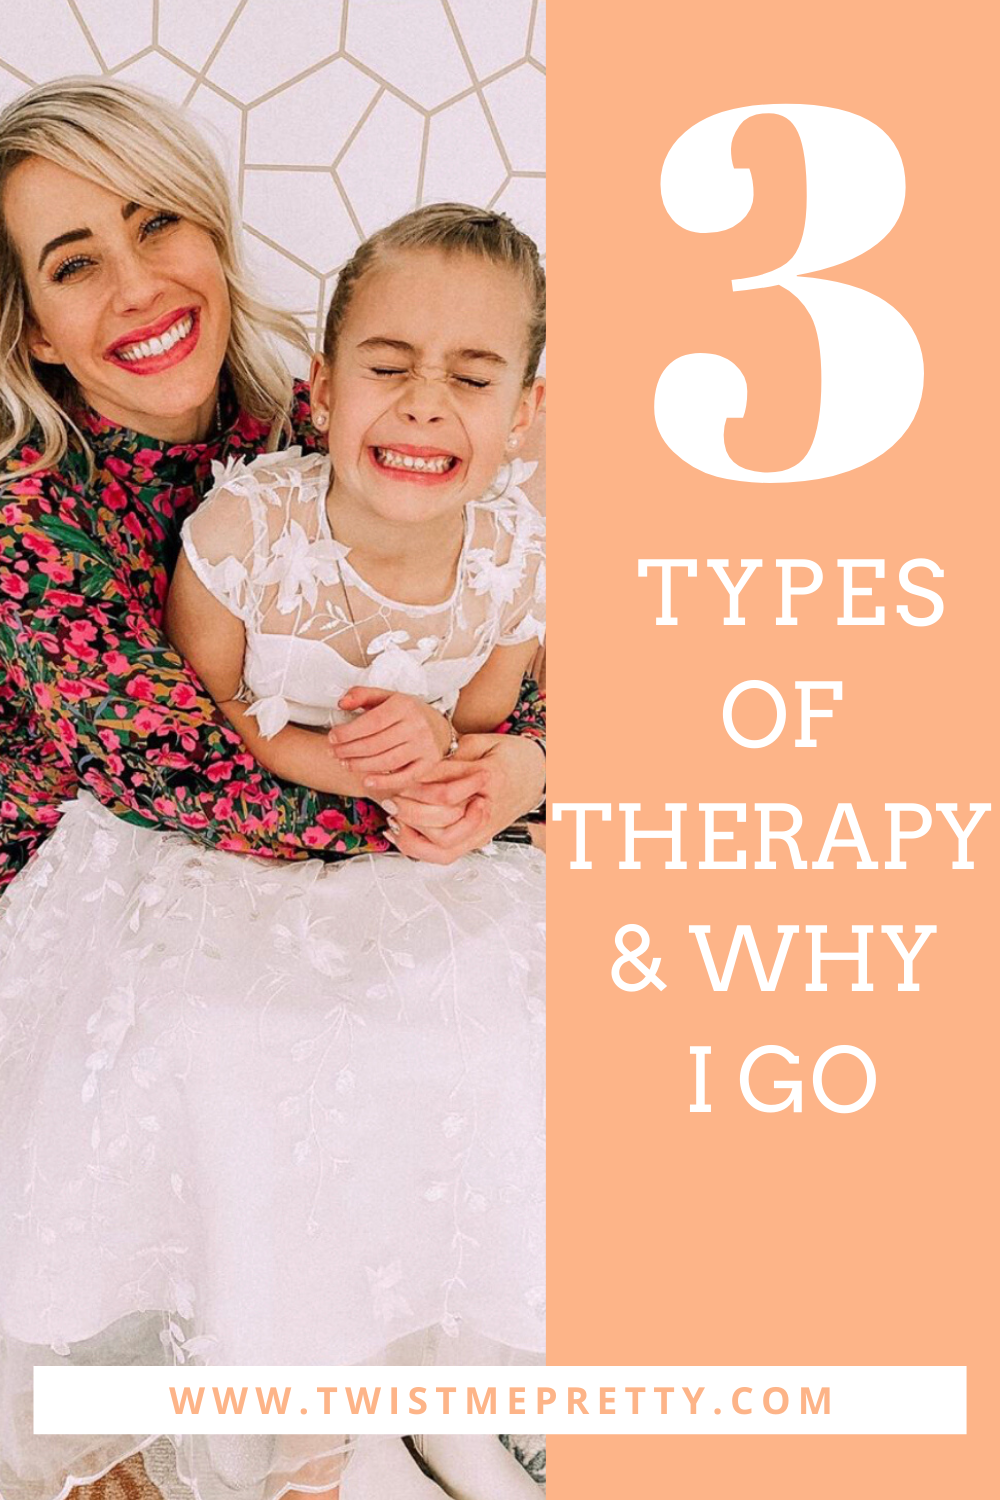 3 types of therapy & why I go. www.TwistMePretty.com